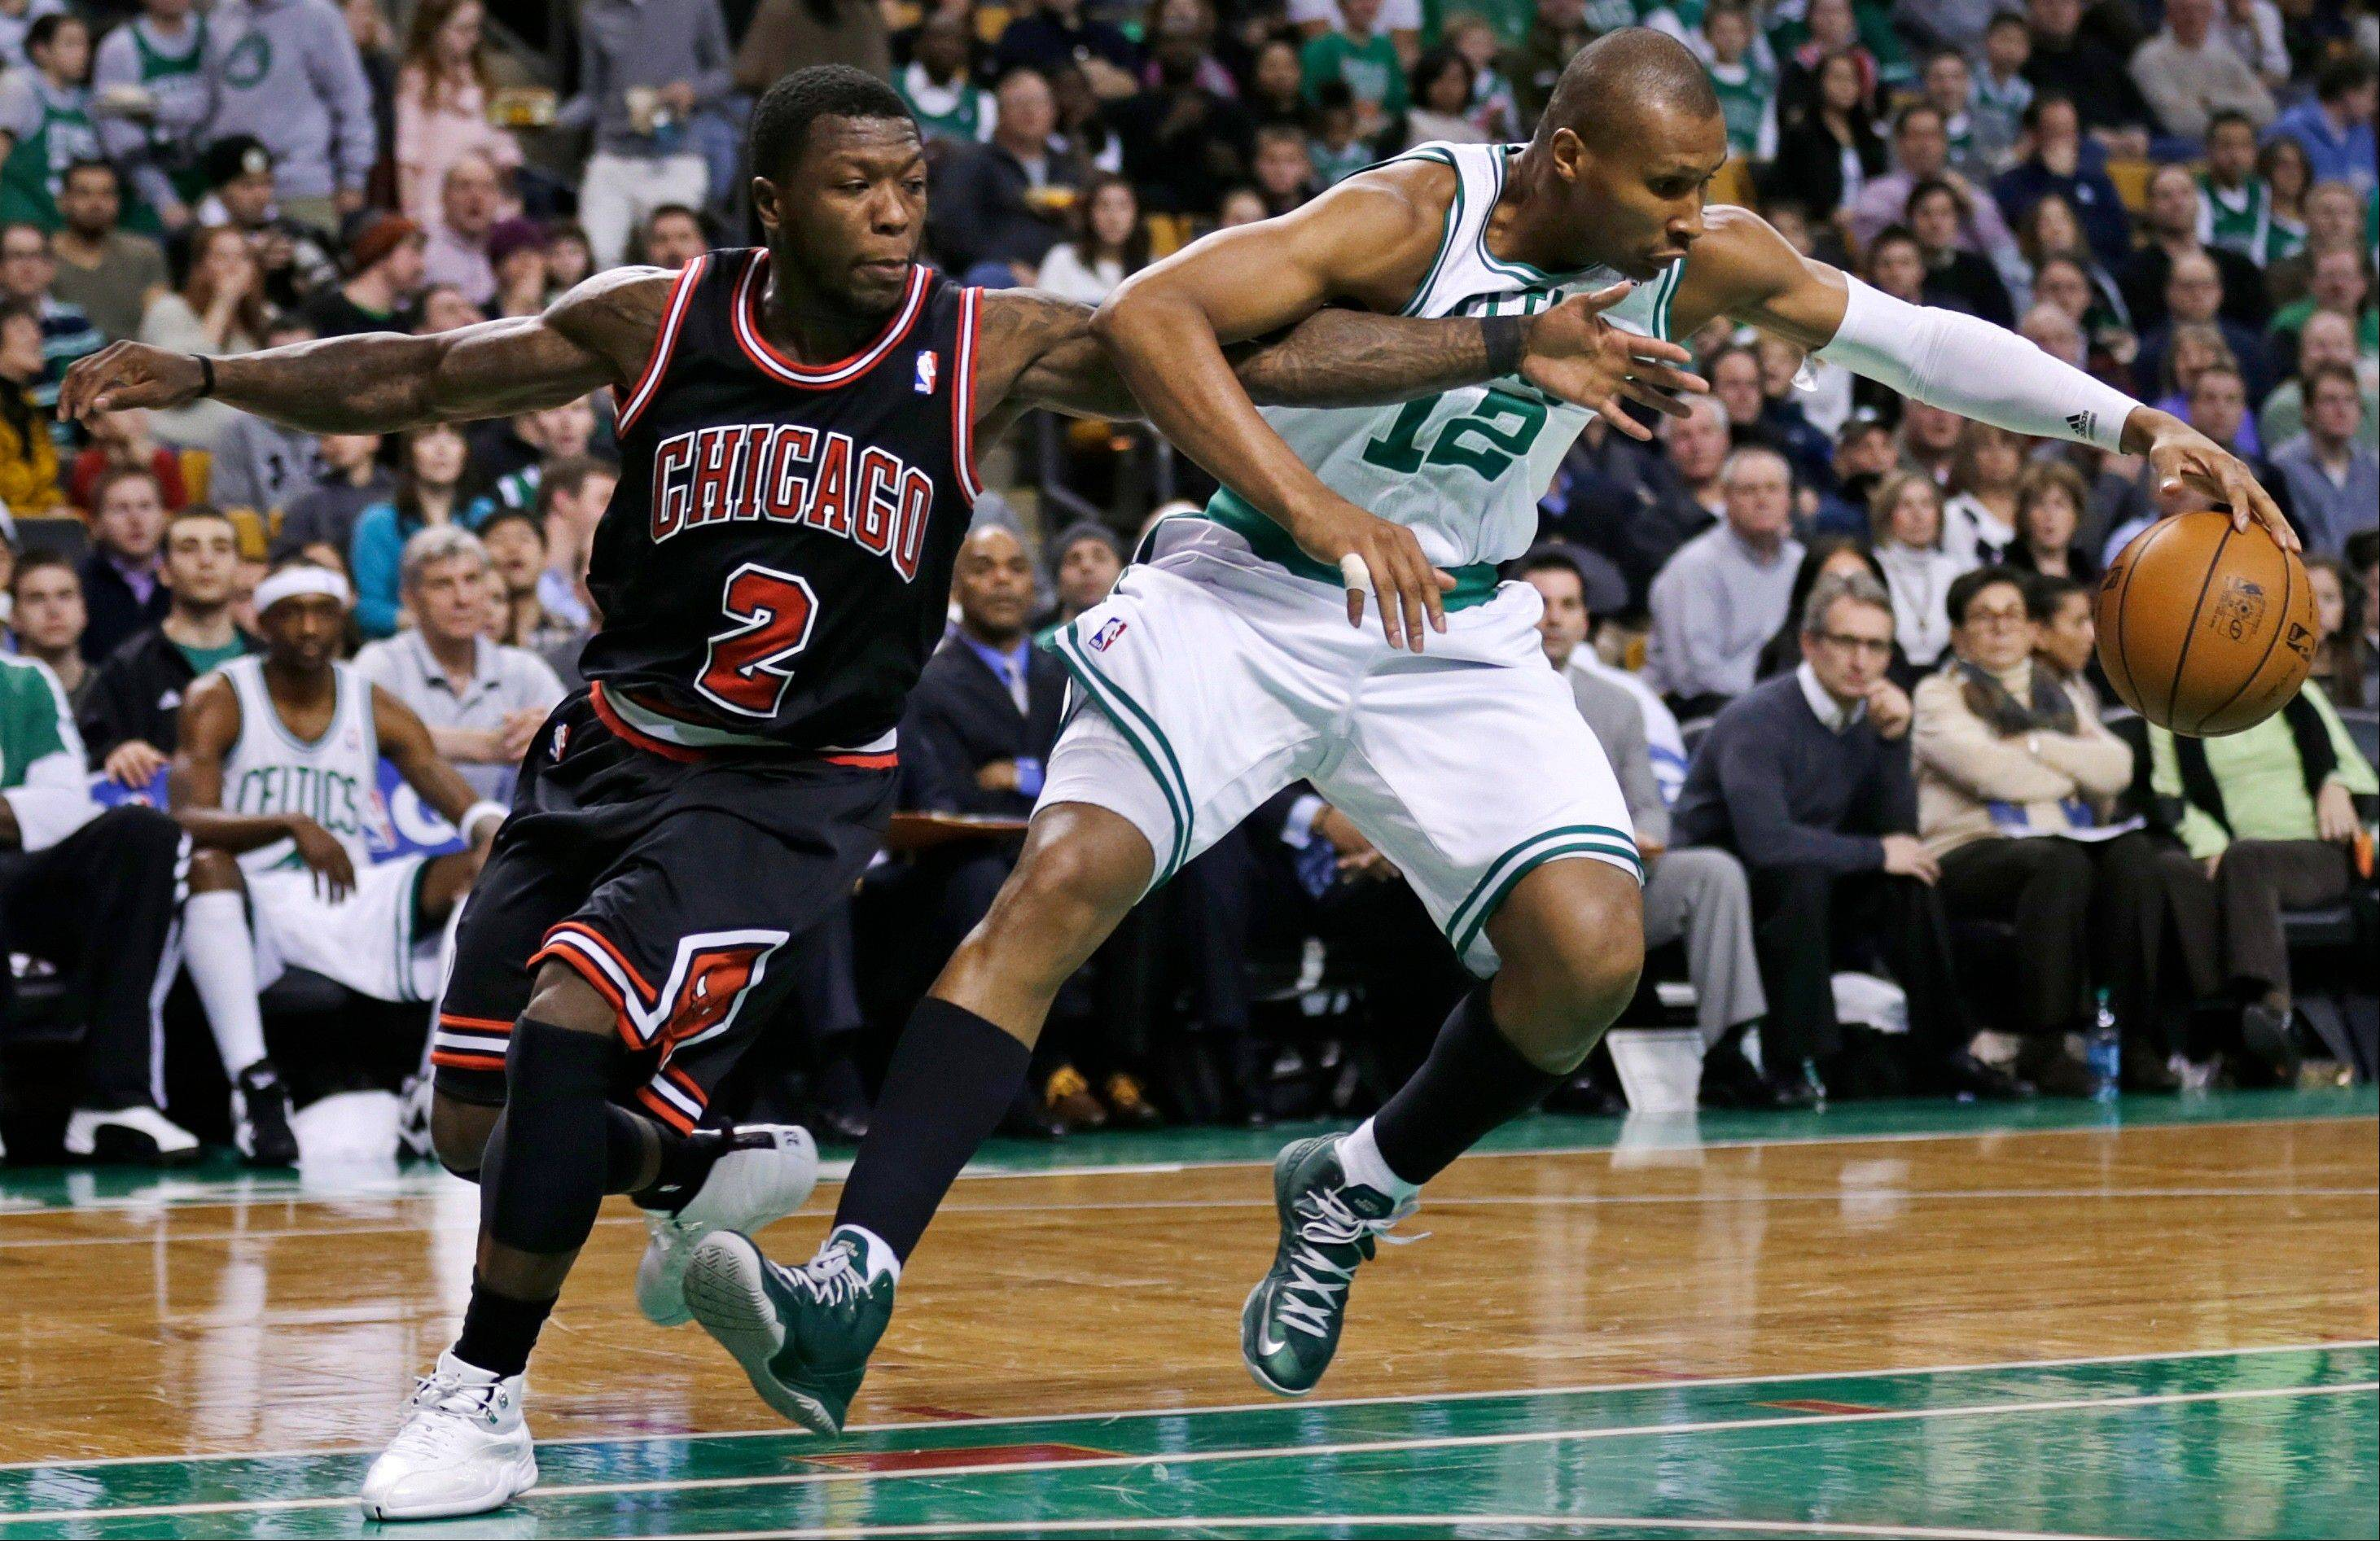 Boston Celtics guard Leandro Barbosa, right, tries to keep control of the ball as he is pressured by Chicago Bulls guard Nate Robinson during the first half Friday in Boston.